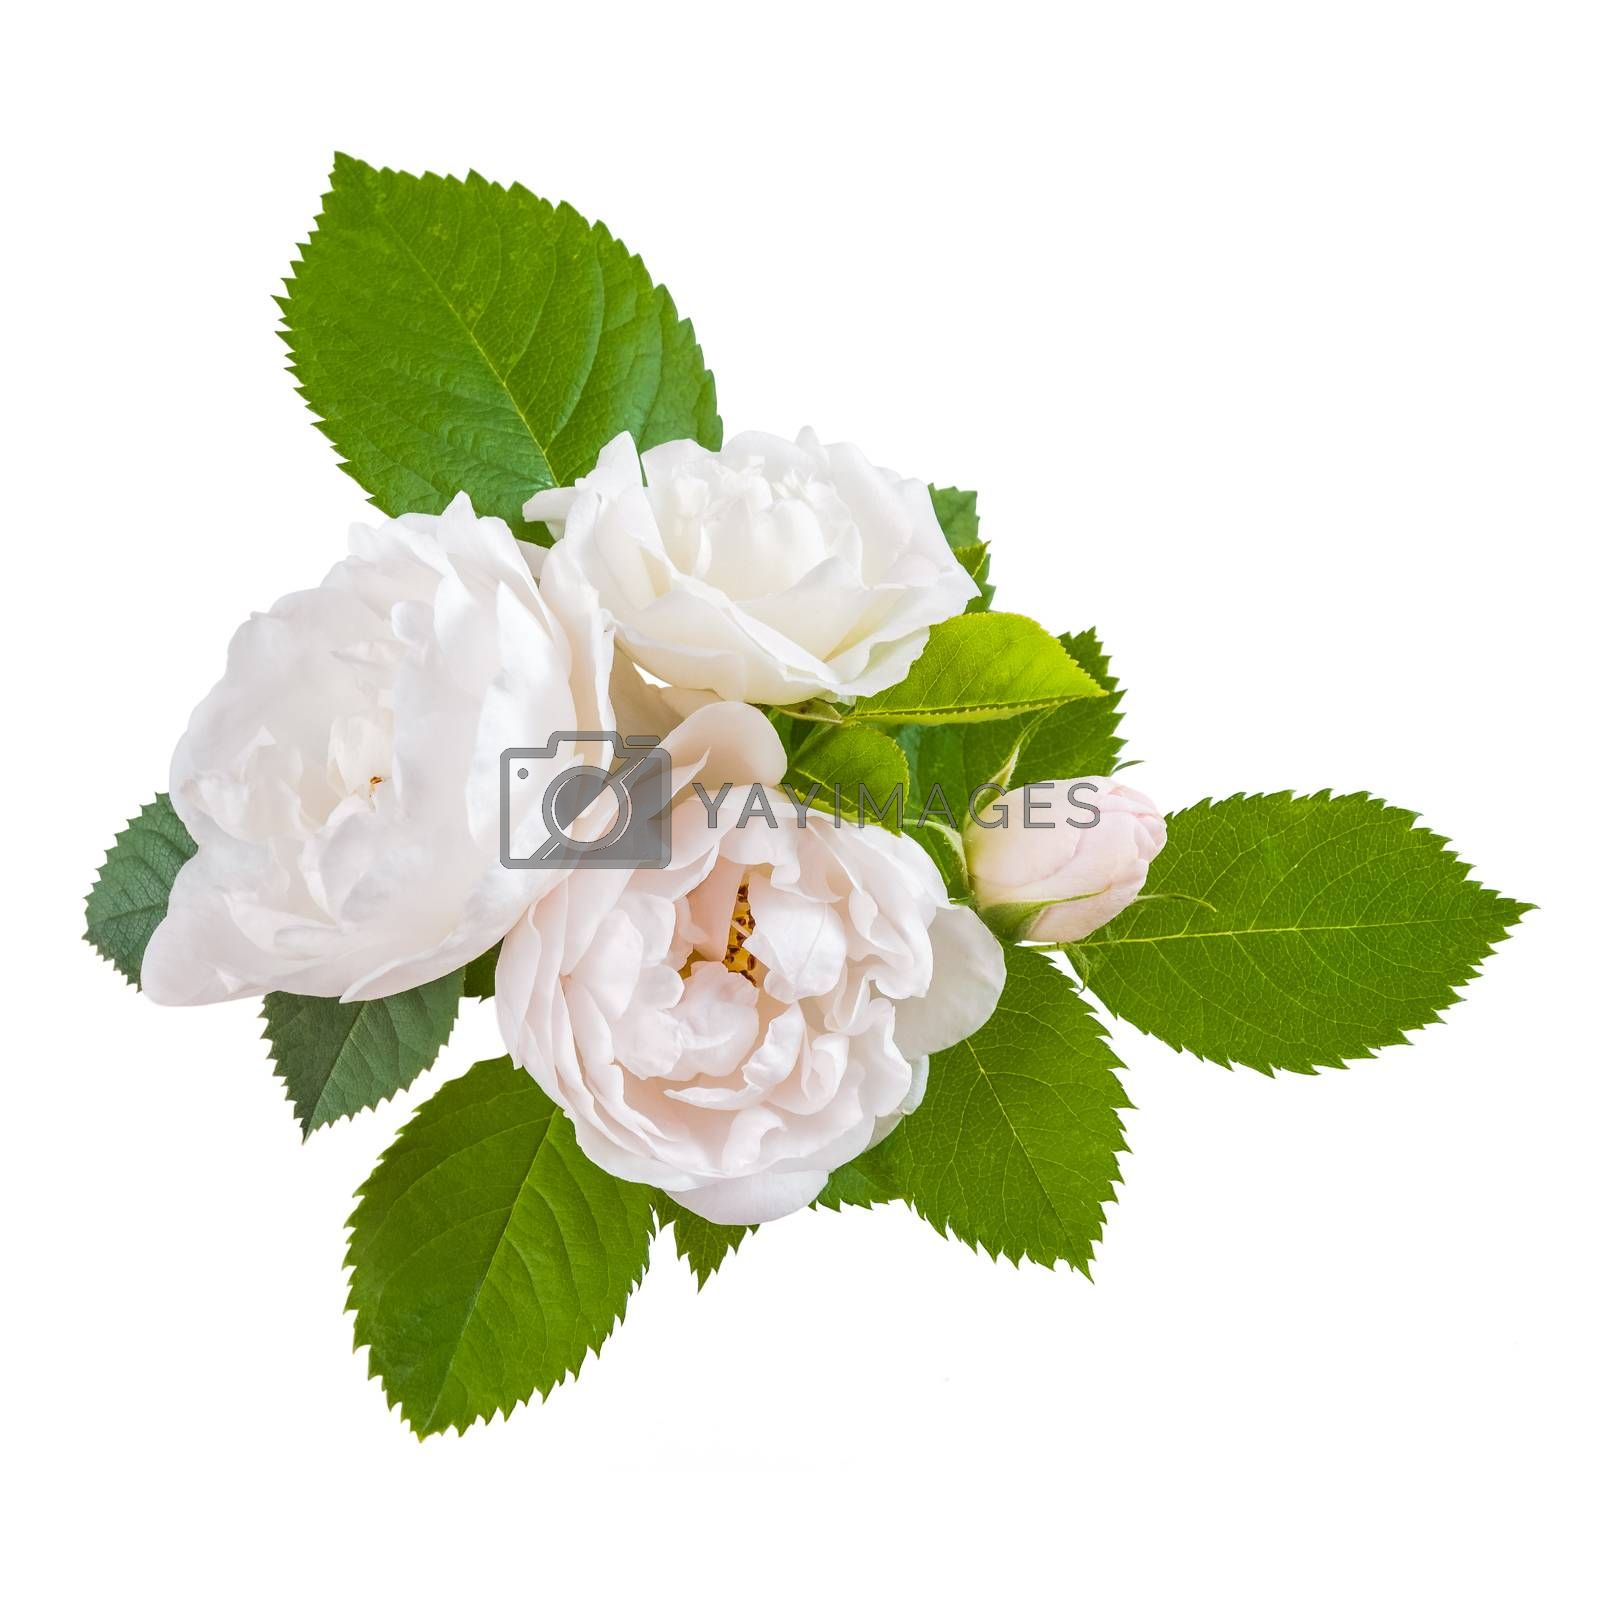 Rose flowers with leaves isolated on white backround